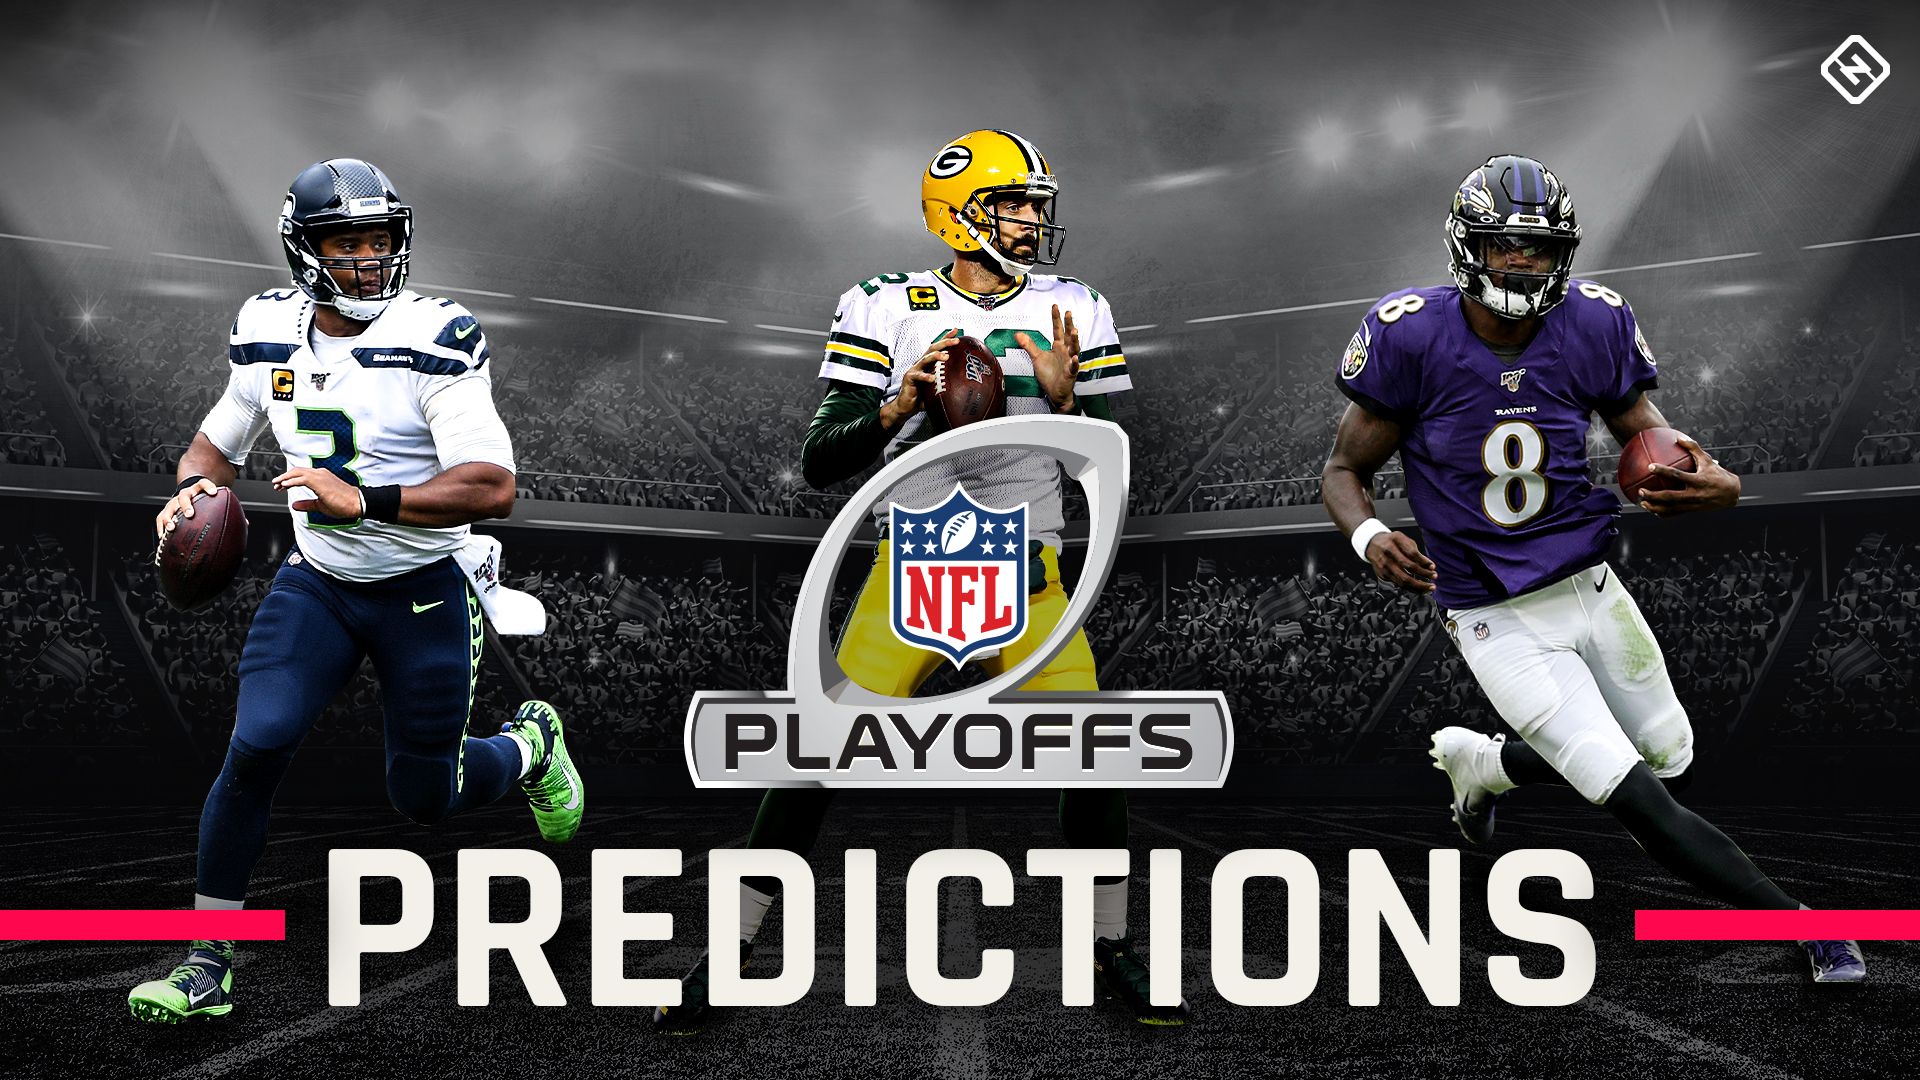 Nfl Playoff Picks Predictions For Afc Nfc Brackets And